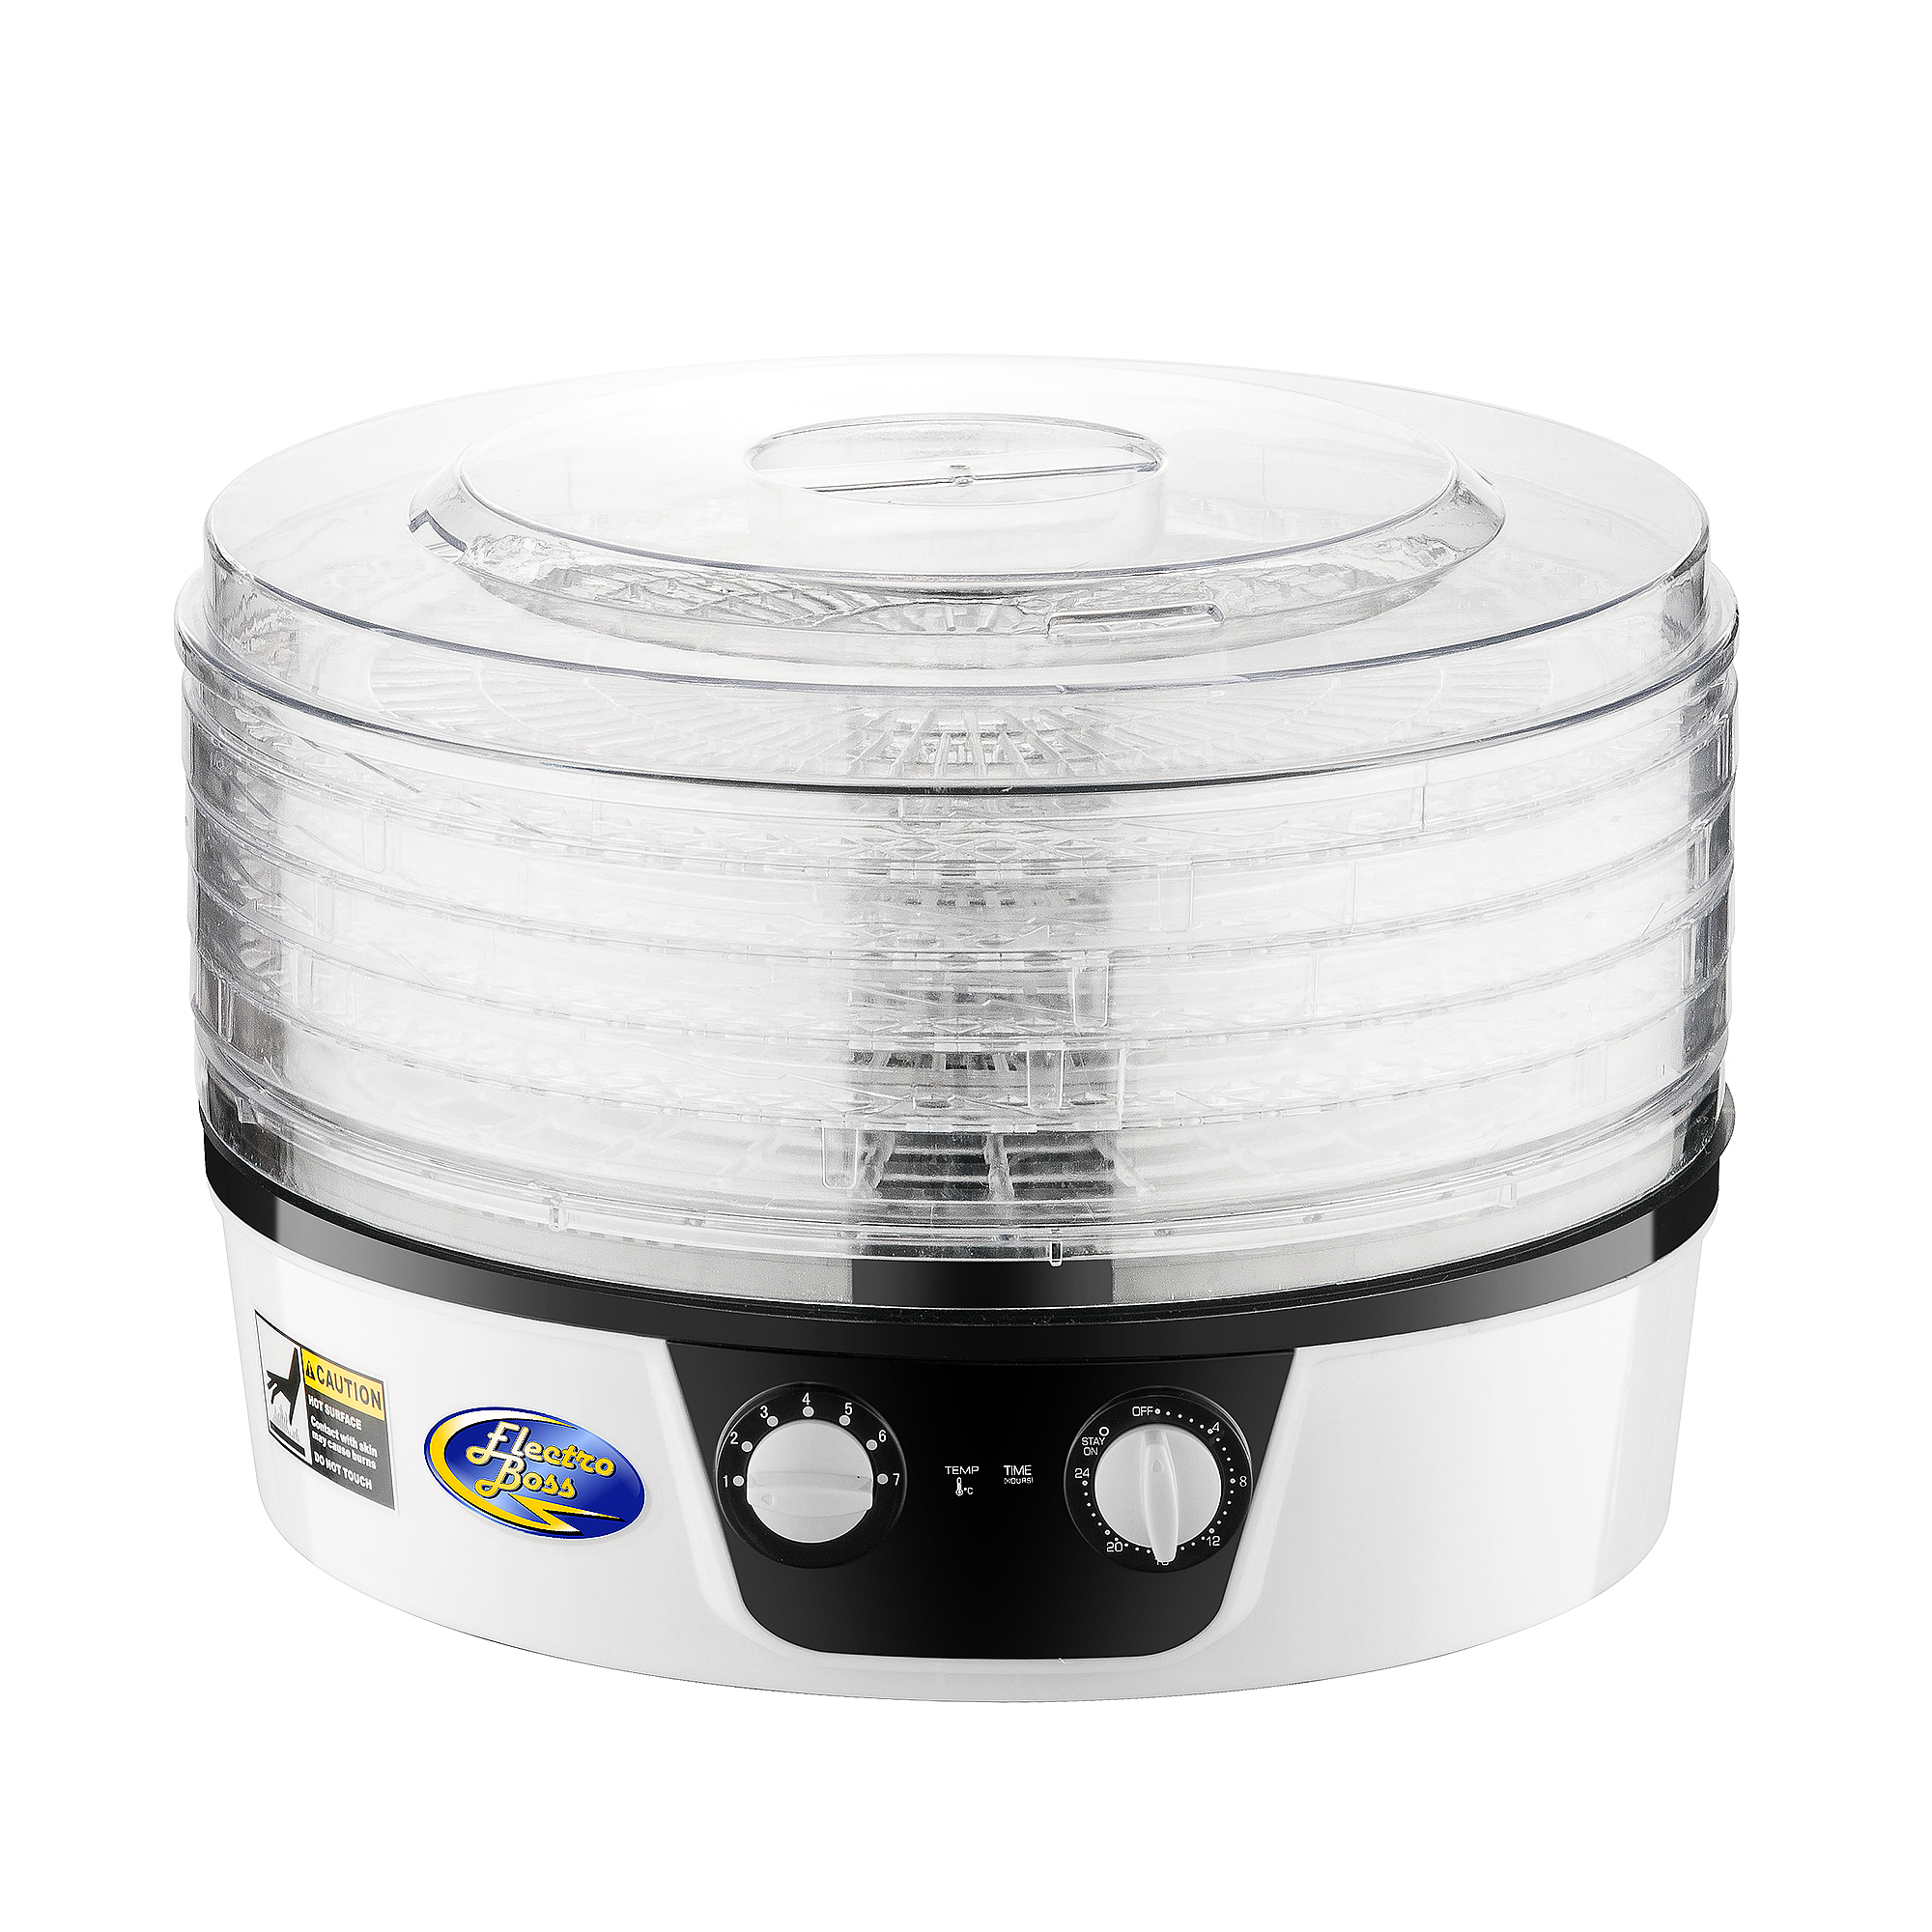 Electro Boss Baja Pro Food Dehydrator with 24 Hour Timer   5 Trays